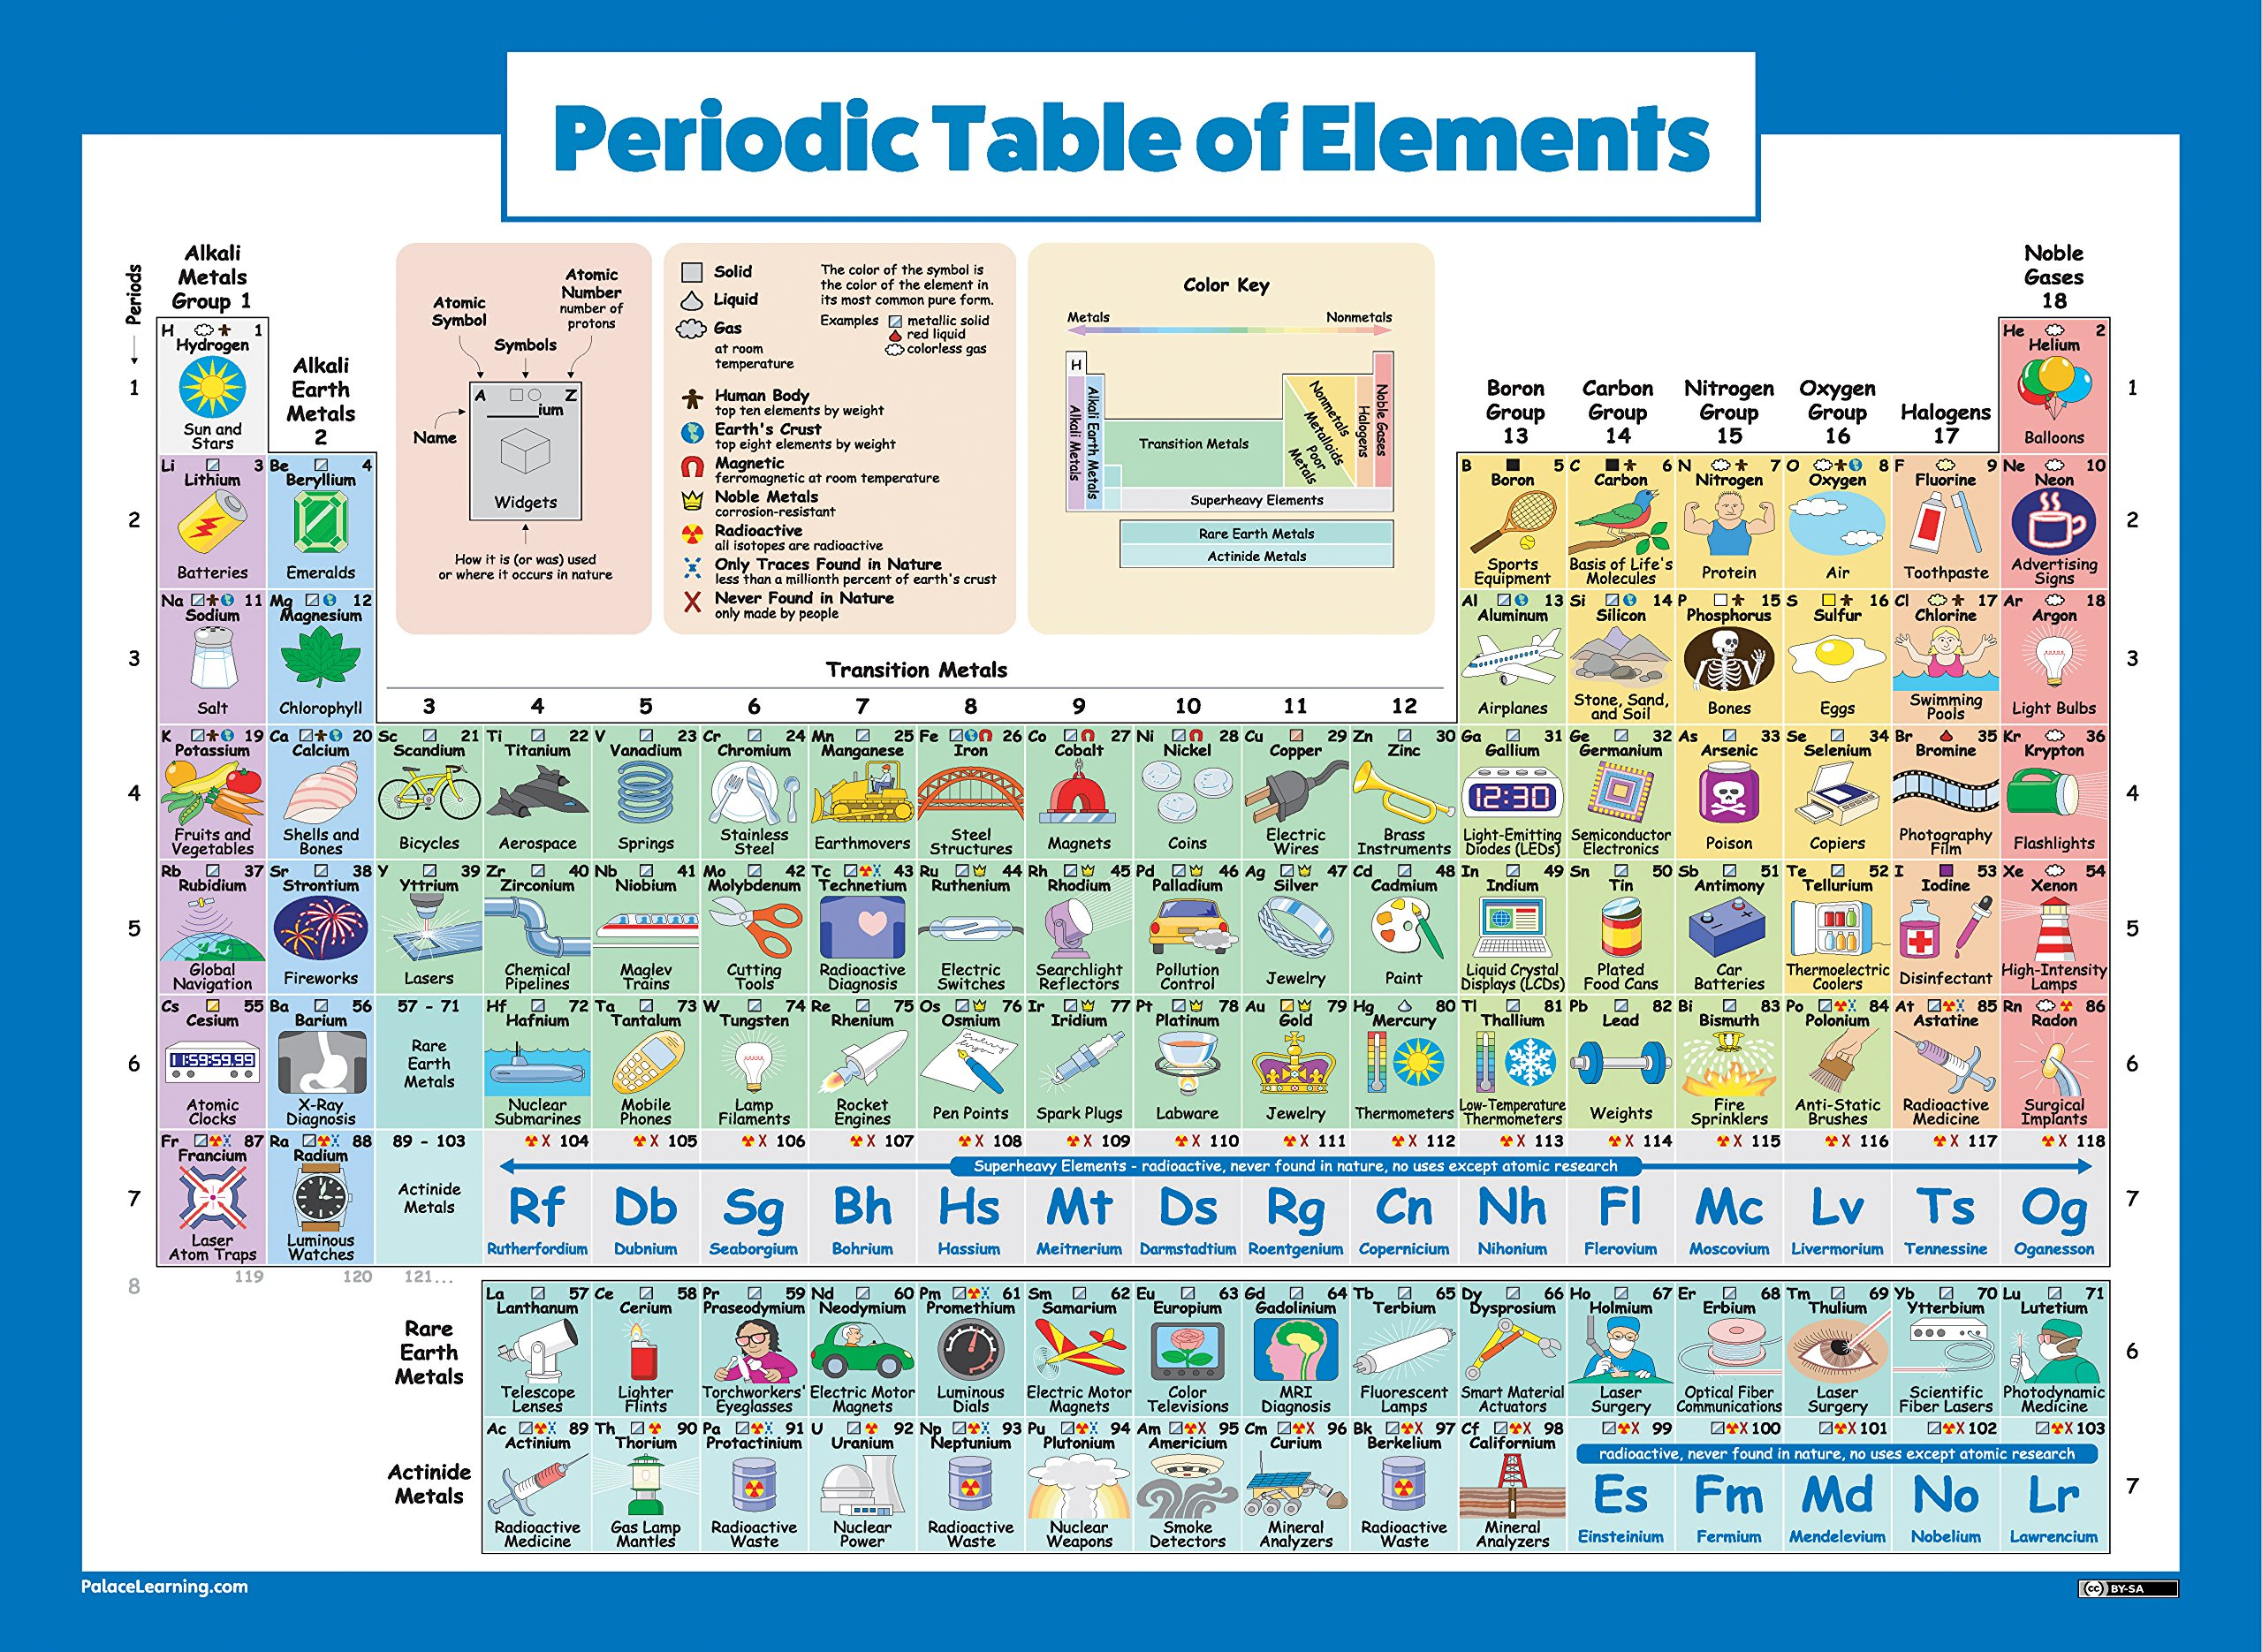 Periodic Table of Elements Poster For Kids - LAMINATED - 2018 Science & Chemistry Chart for Classroom (18 x 24)